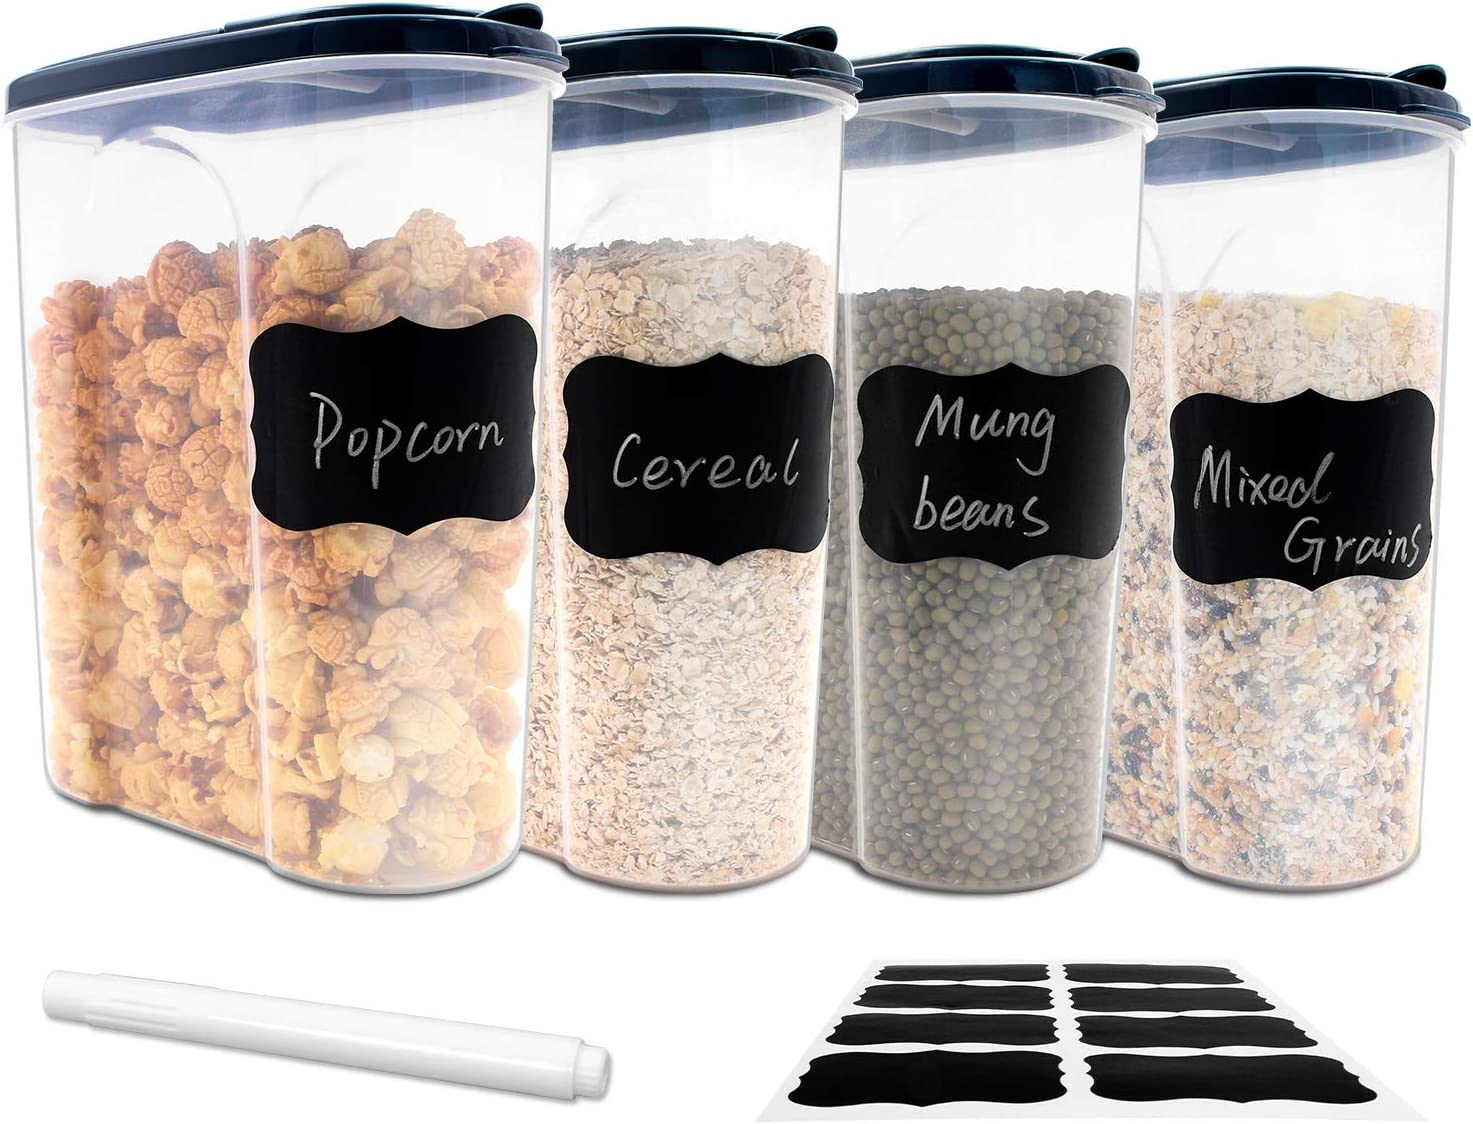 Large Tall Airtight Food Storage Containers, Rayze 4 PACK Plastic Airtight Kitchen & Pantry Organization, Ideal for Flour & Sugar - BPA-Free - Plastic Canisters with Labels